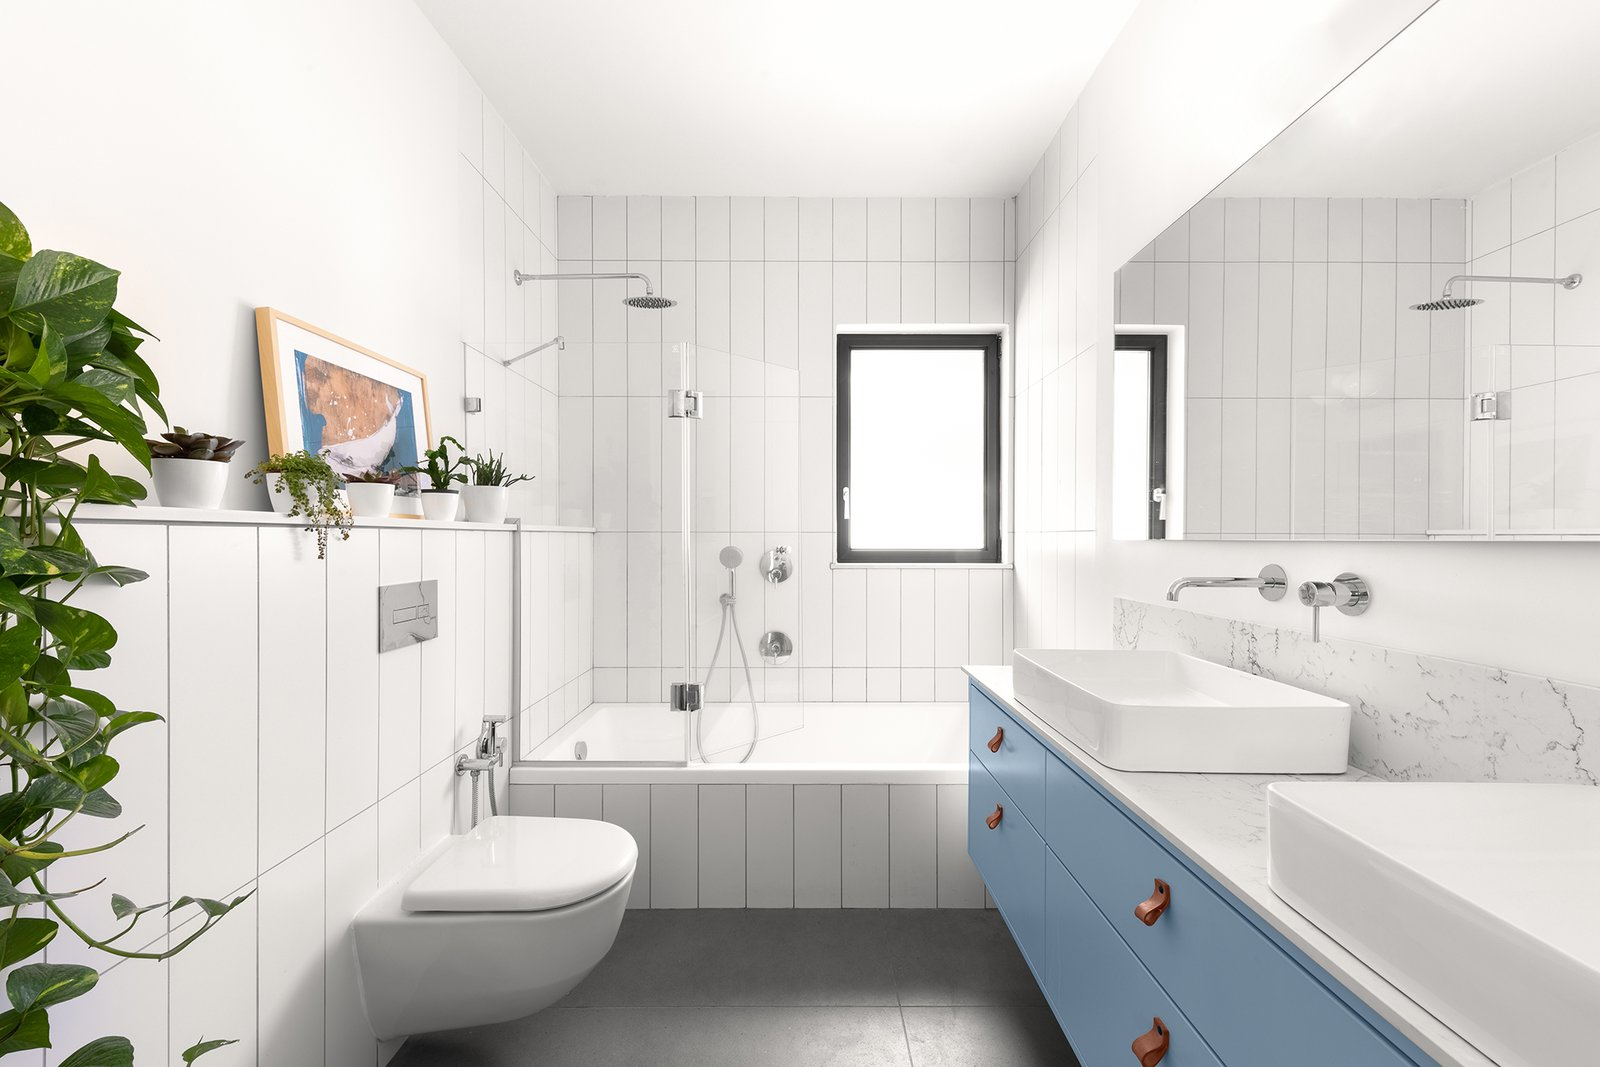 Bath, Subway Tile, Wood, Ceramic Tile, Marble, Vessel, One Piece, Ceramic Tile, Ceiling, and Open Ravit Dvir Architecture and Design  Bath Ceramic Tile Subway Tile One Piece Photos from The house in Mei Ami